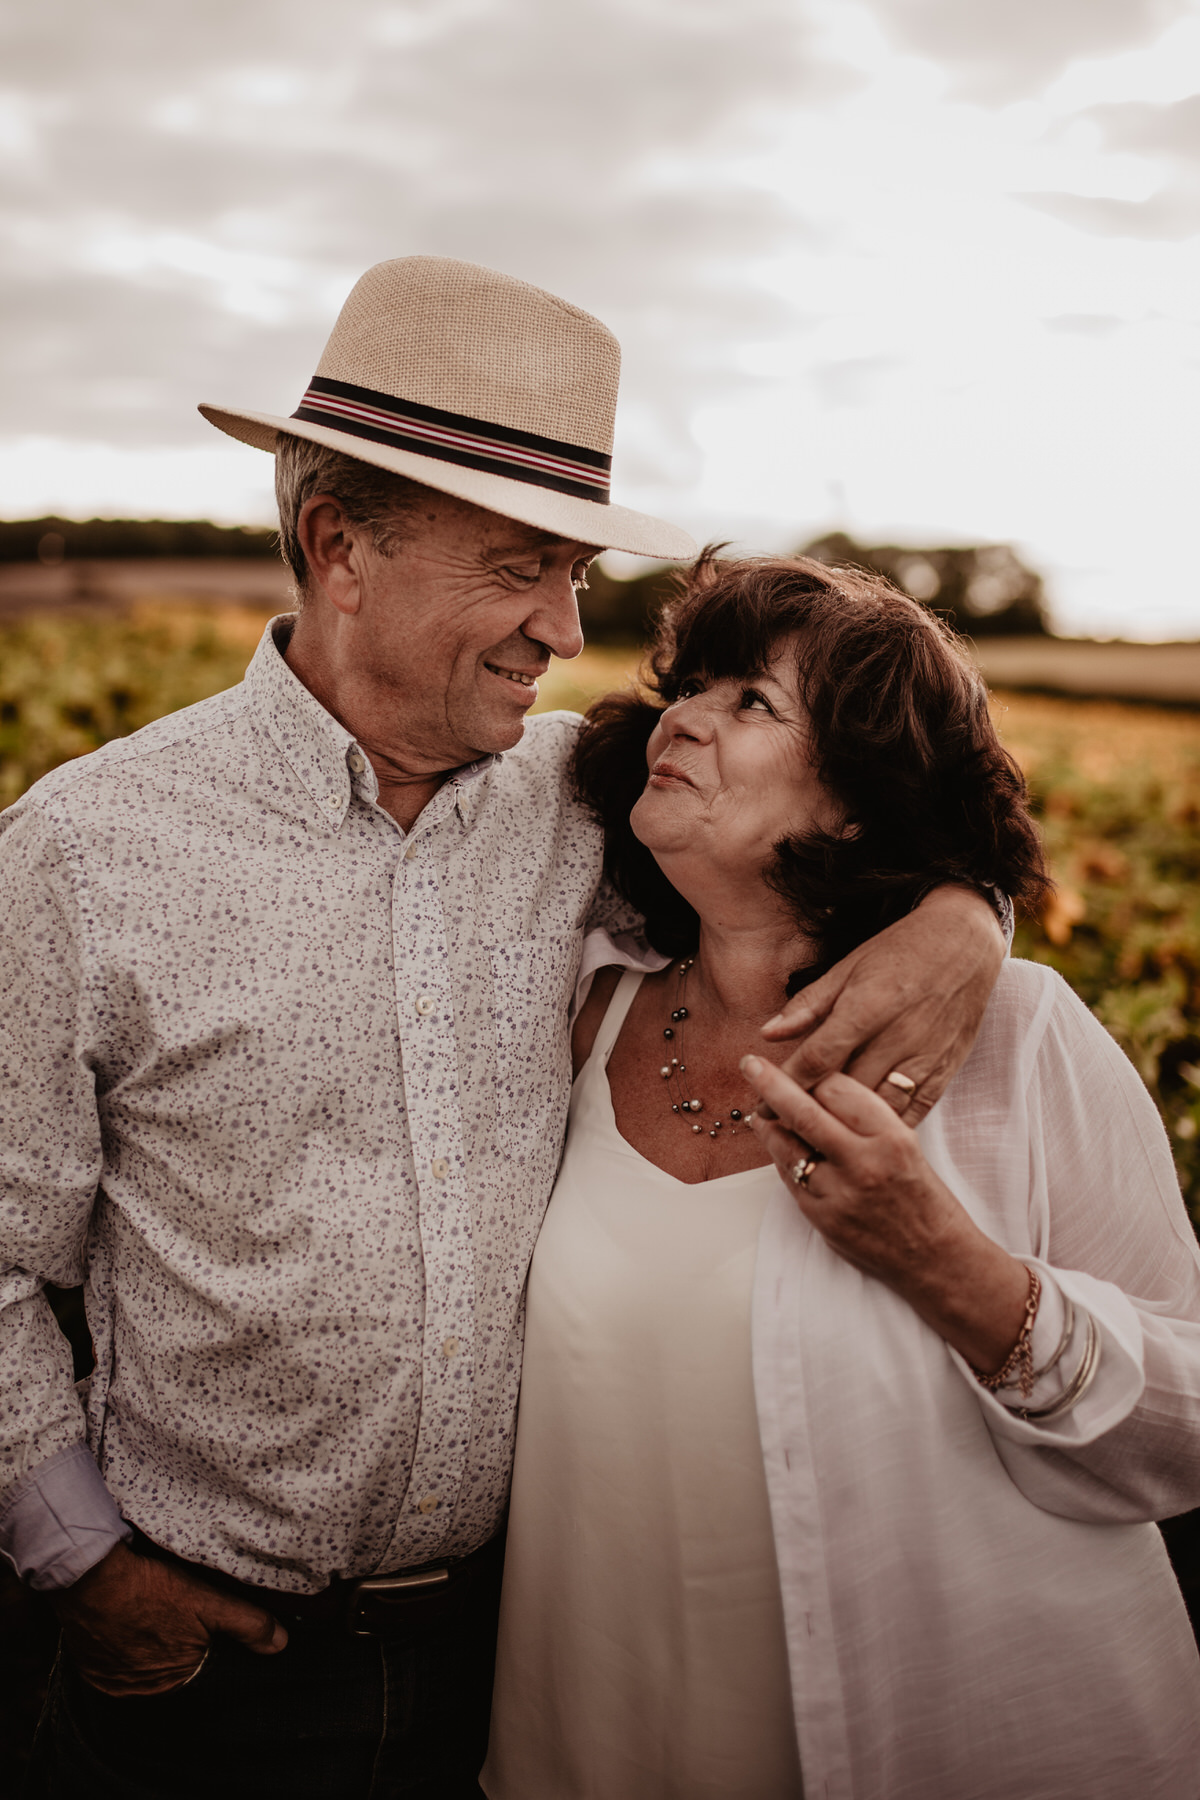 34 Years With You by Sarah Mac Photography